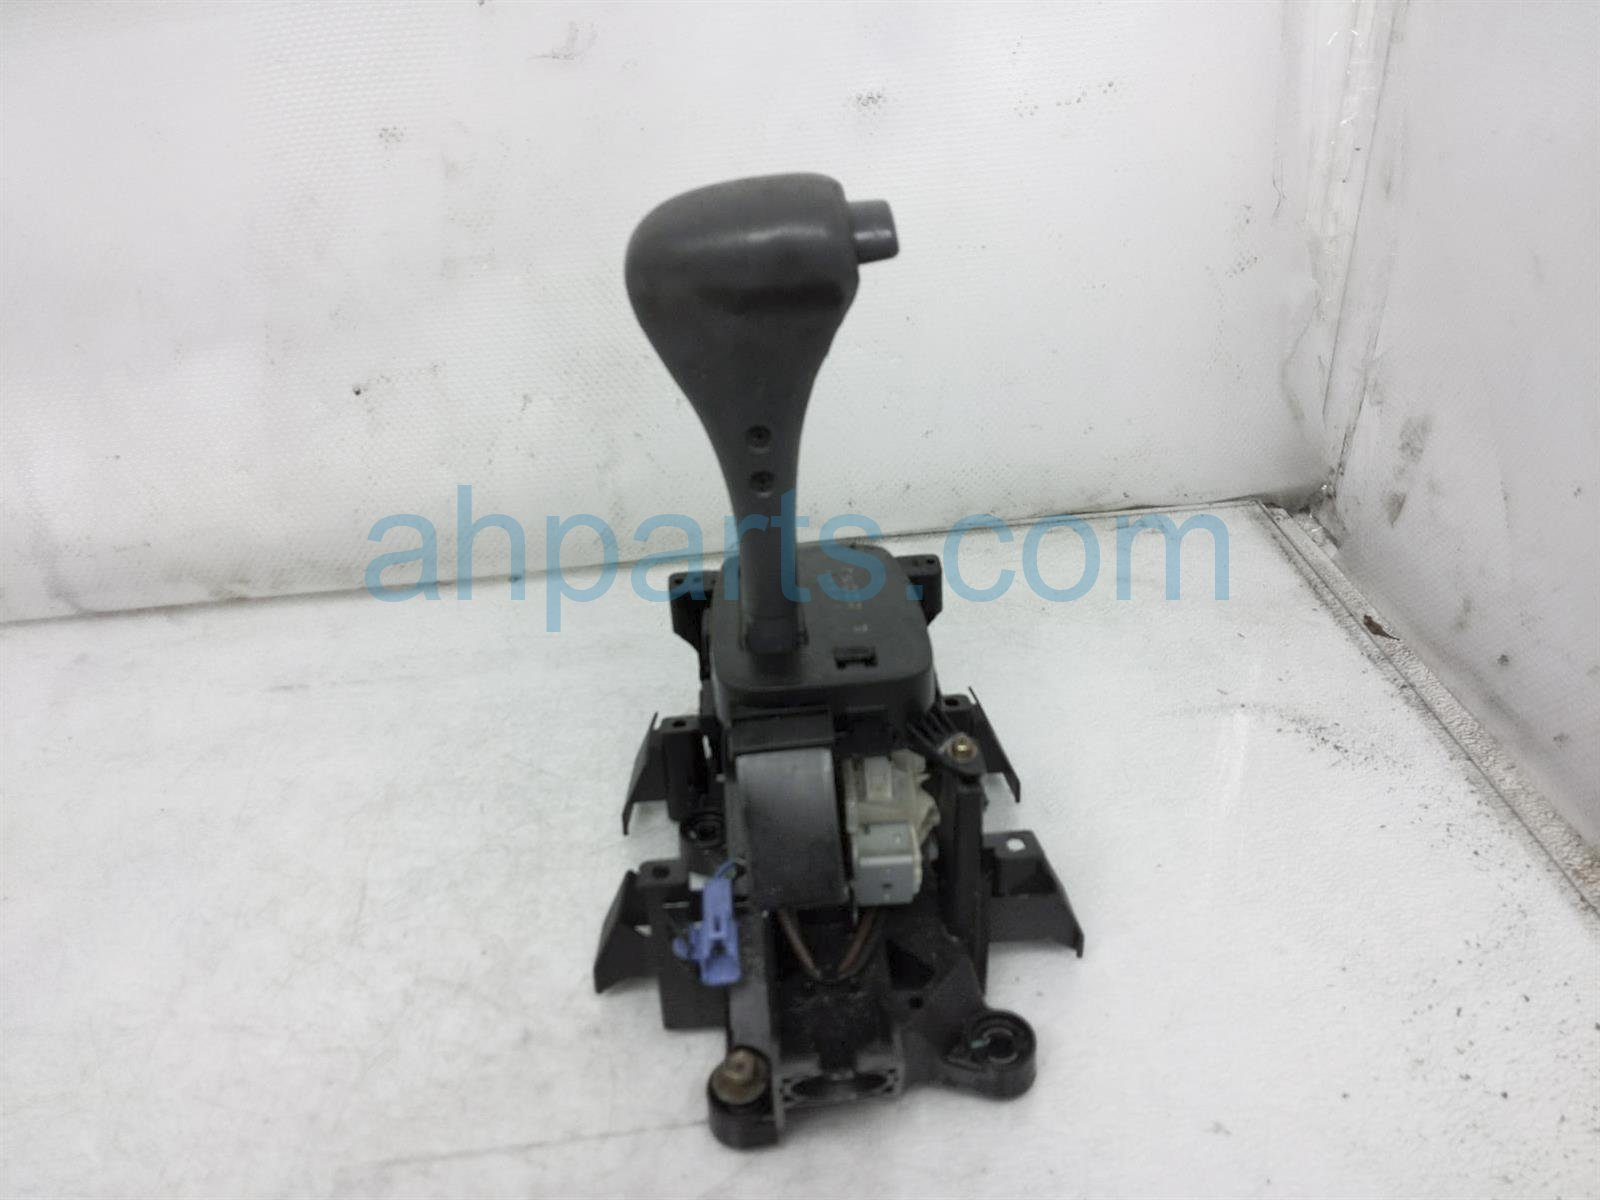 2001 Toyota Camry Shifter Assy Replacement